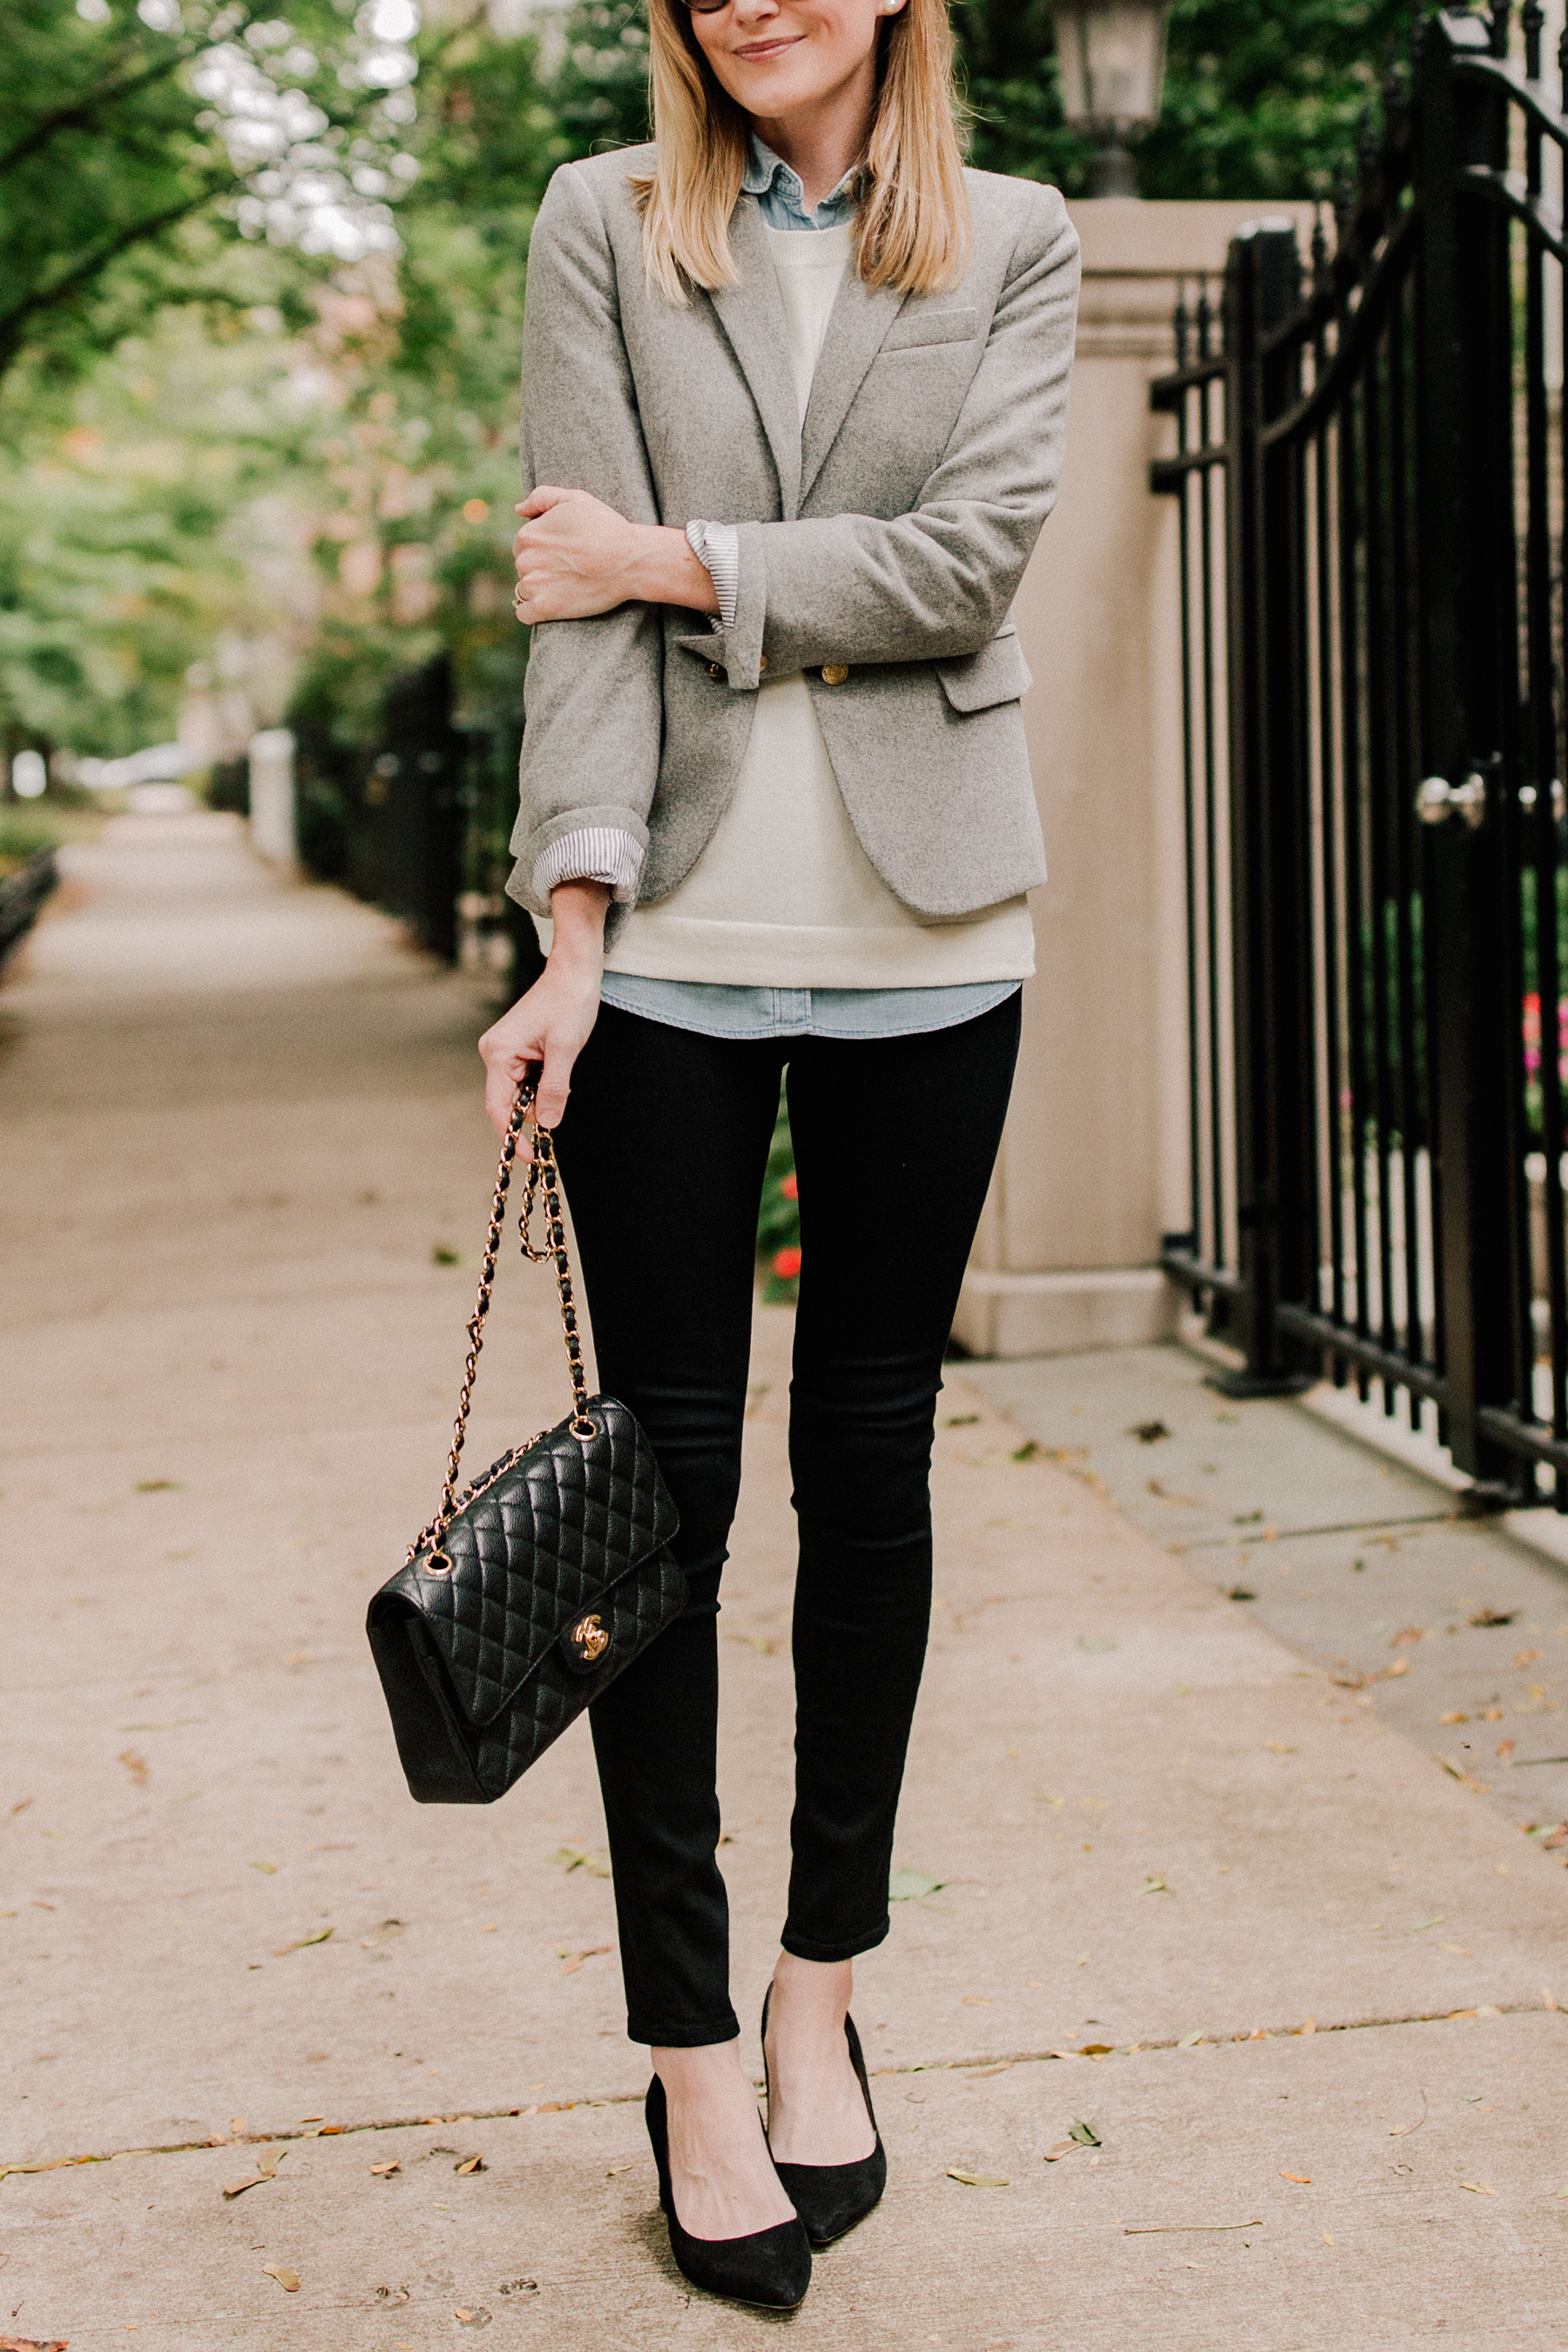 Chambray Shirt / Crewneck Sweater / Schoolboy Blazer / Black Pumps